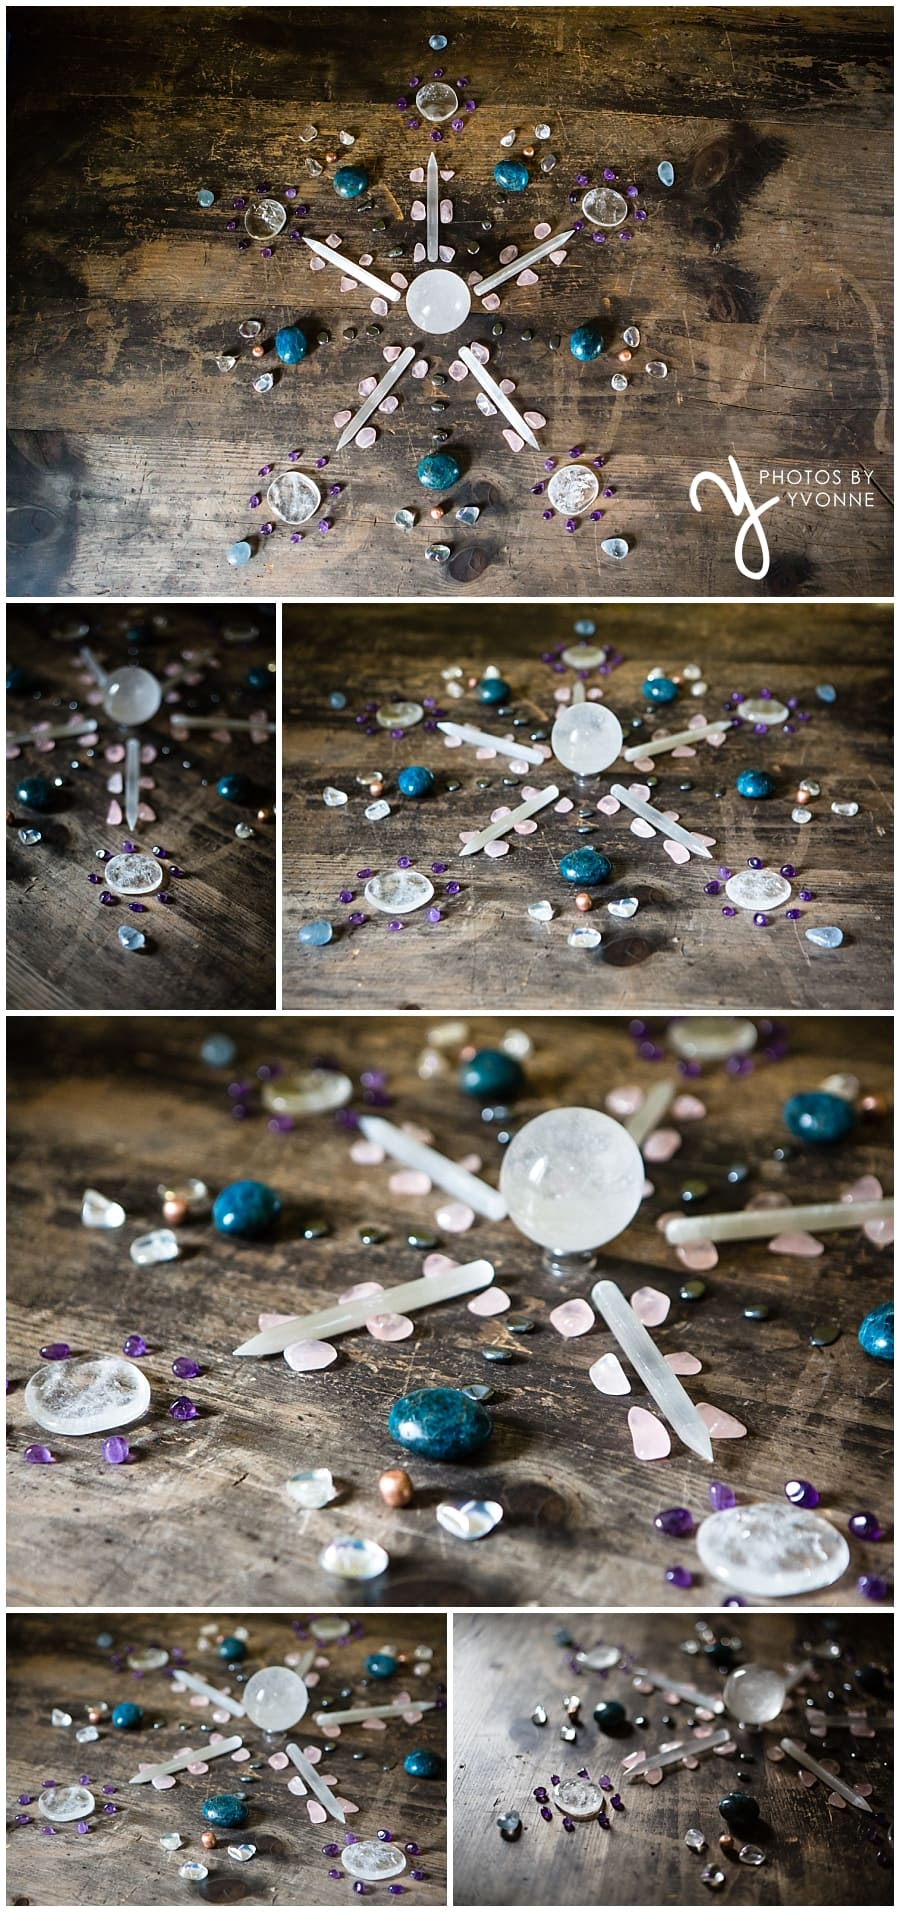 Crystal Grids at Asherah's Garden